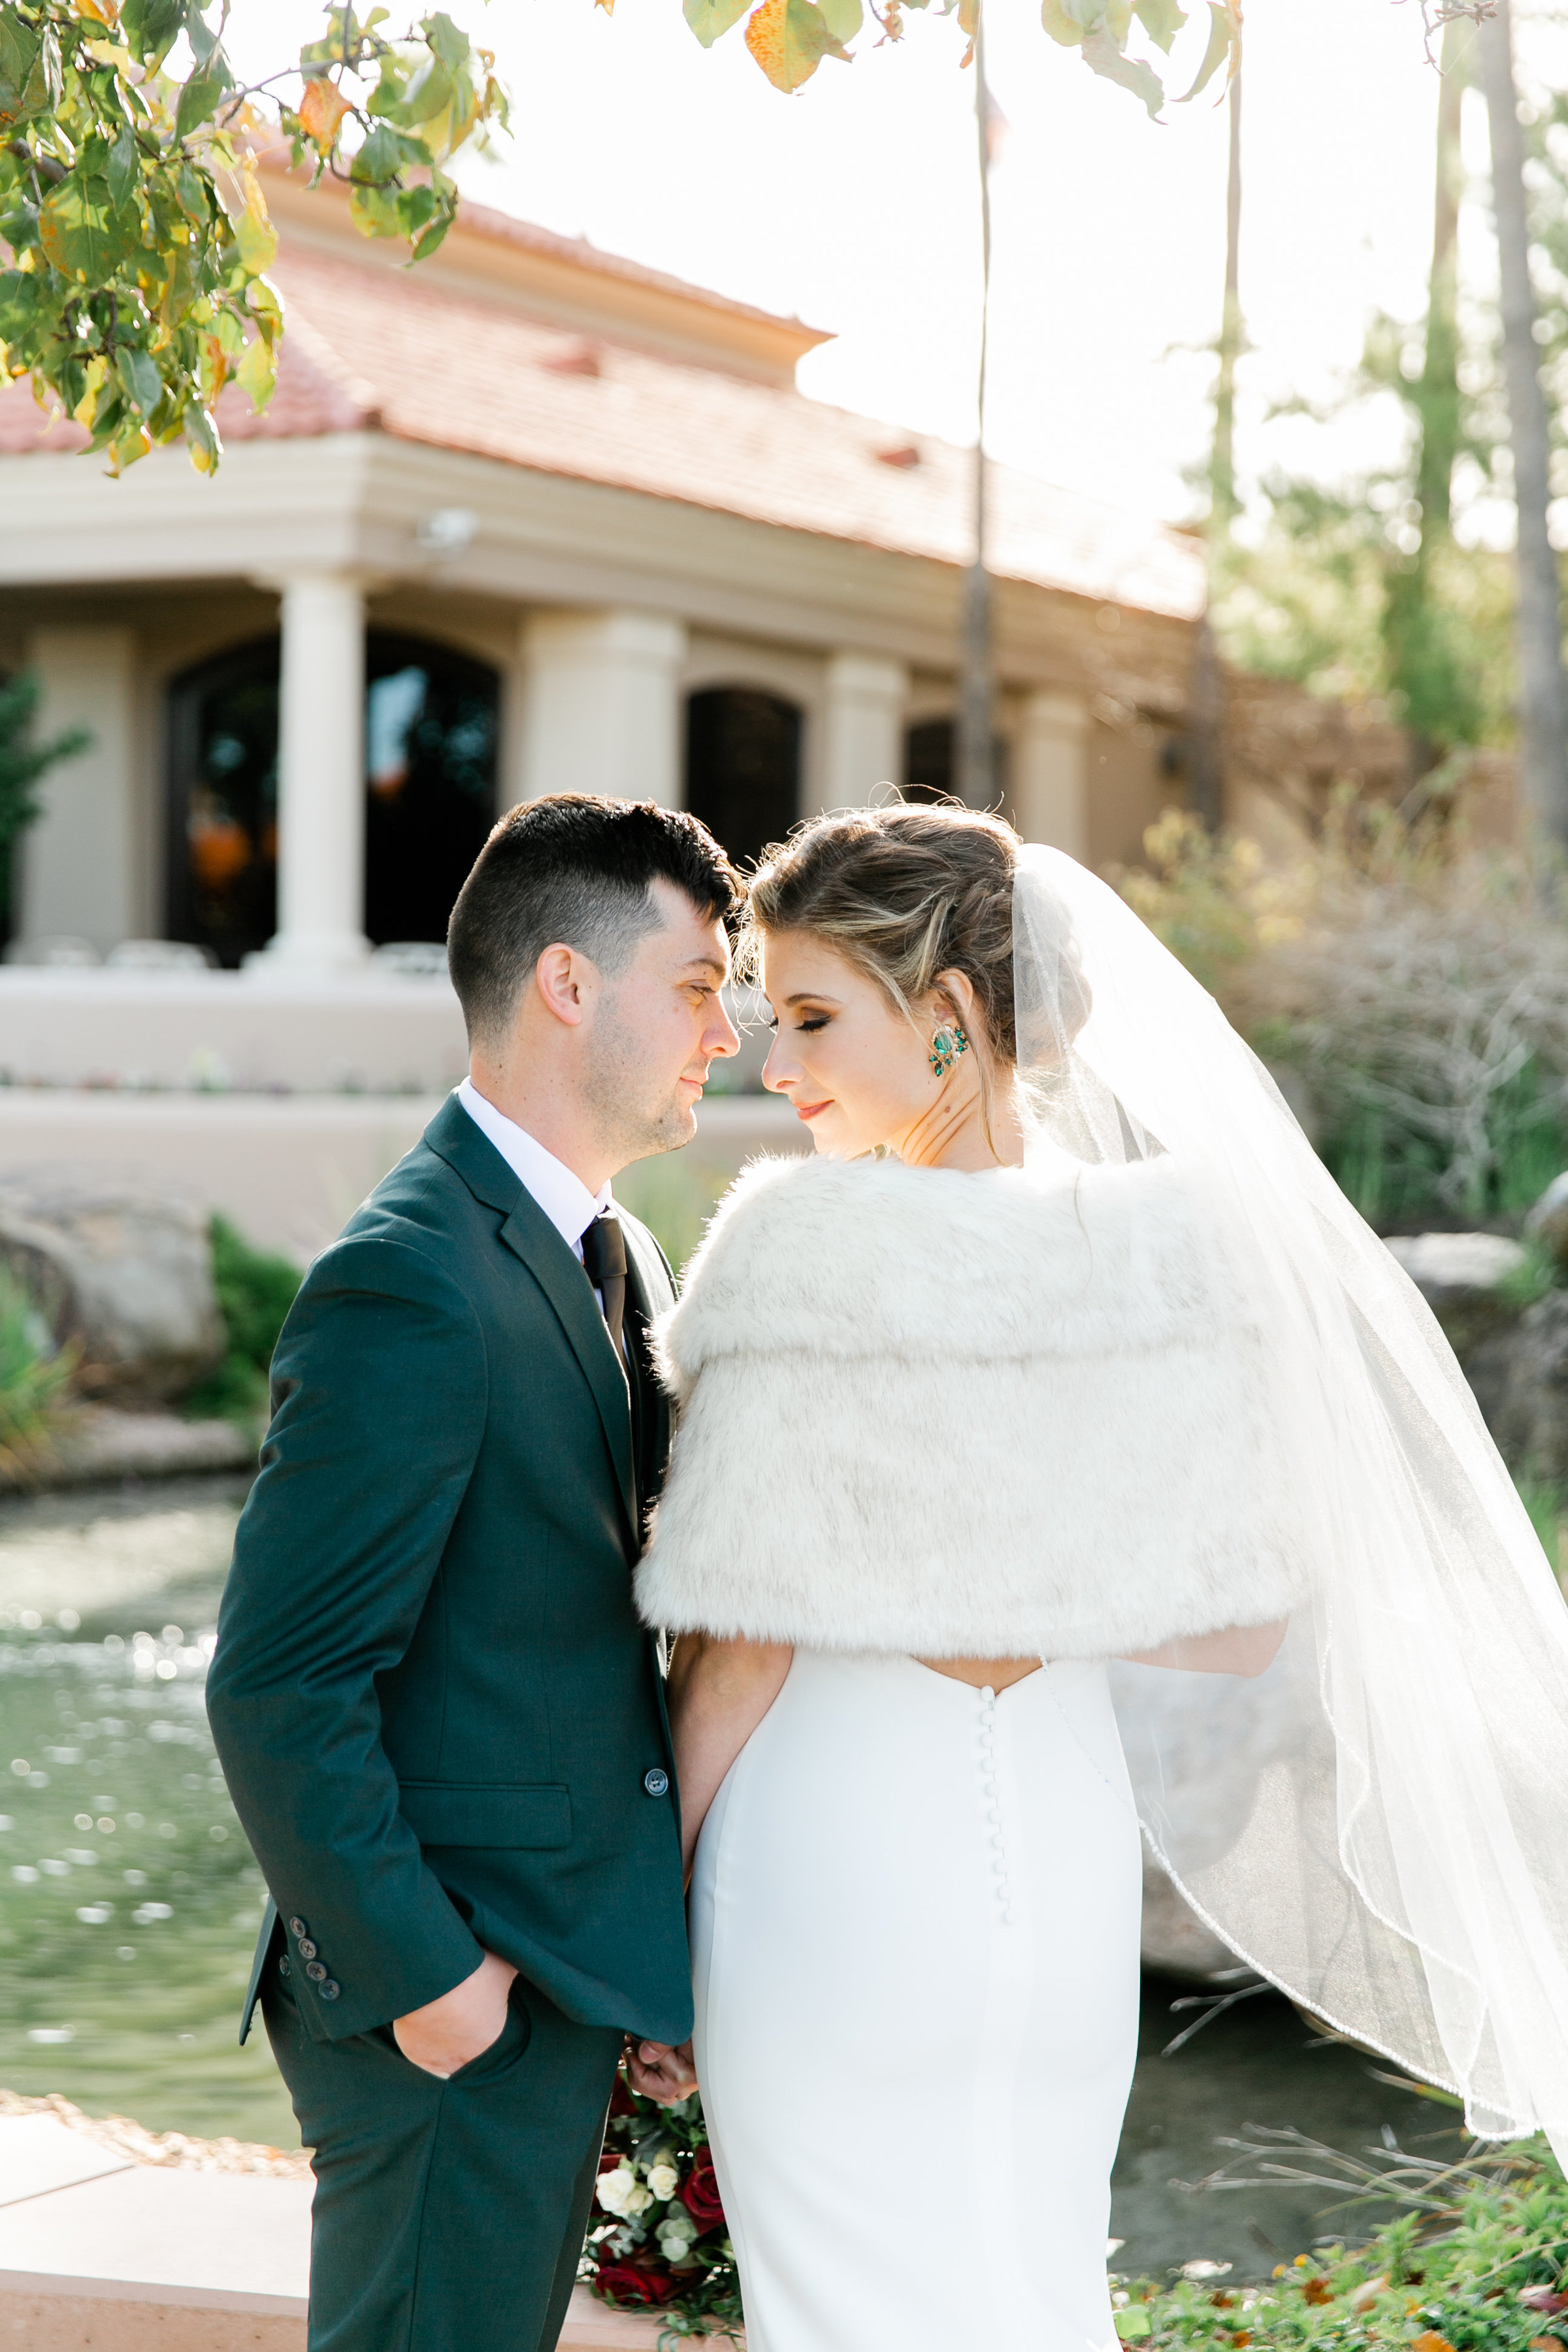 Karlie Colleen Photography - Gilbert Arizona Wedding - Val Vista Lakes - Brynne & Josh-472